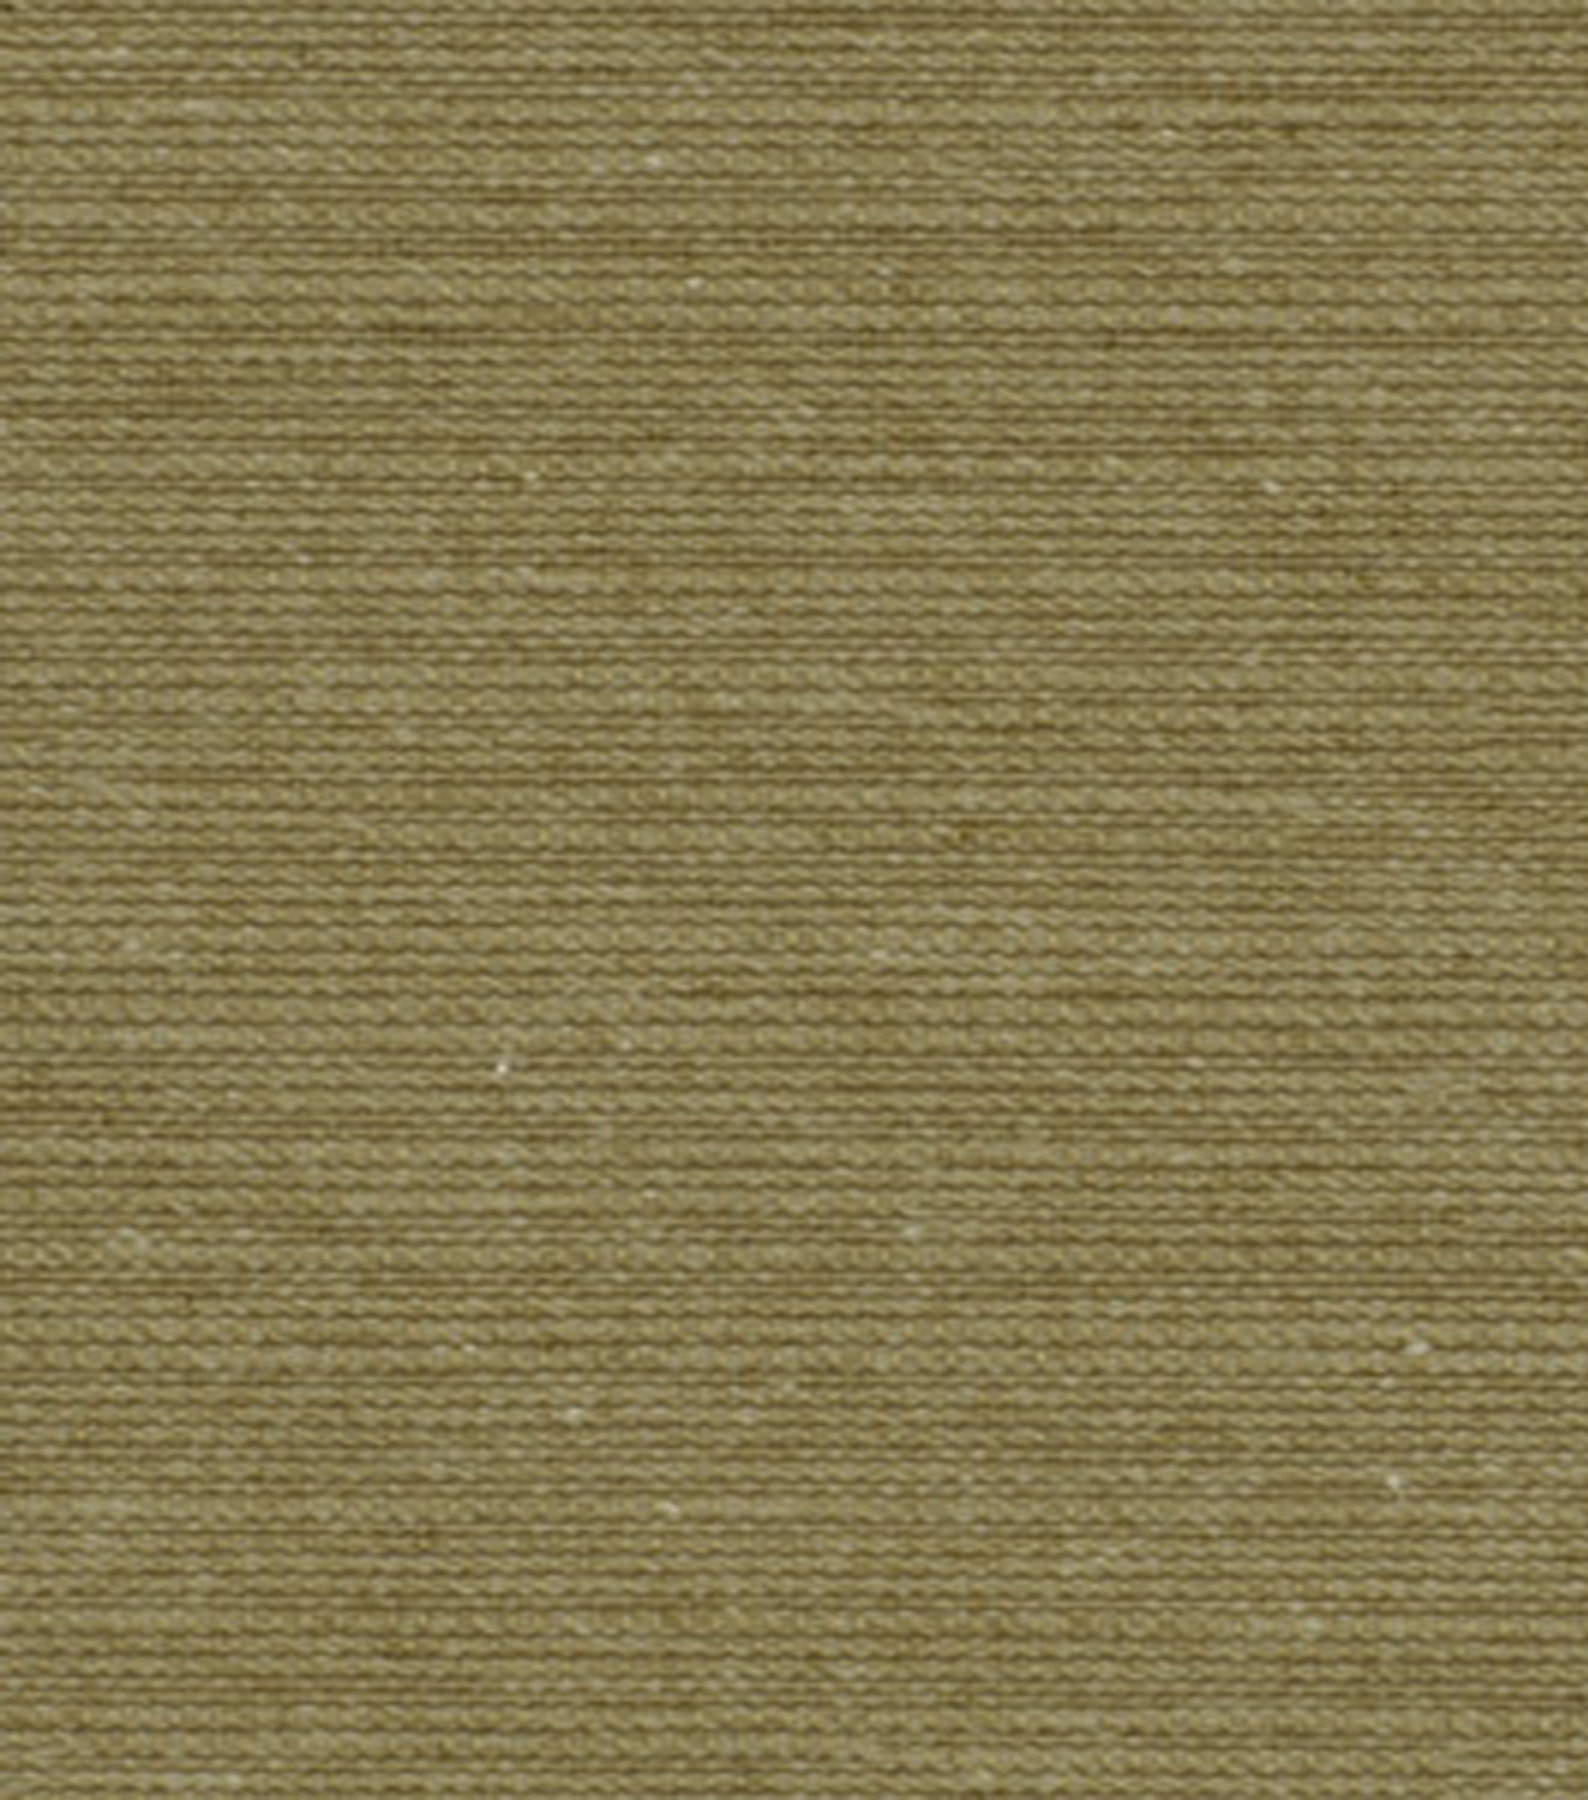 Home Decor 8\u0022x8\u0022 Fabric Swatch-Signature Series Slubby Texture Linen